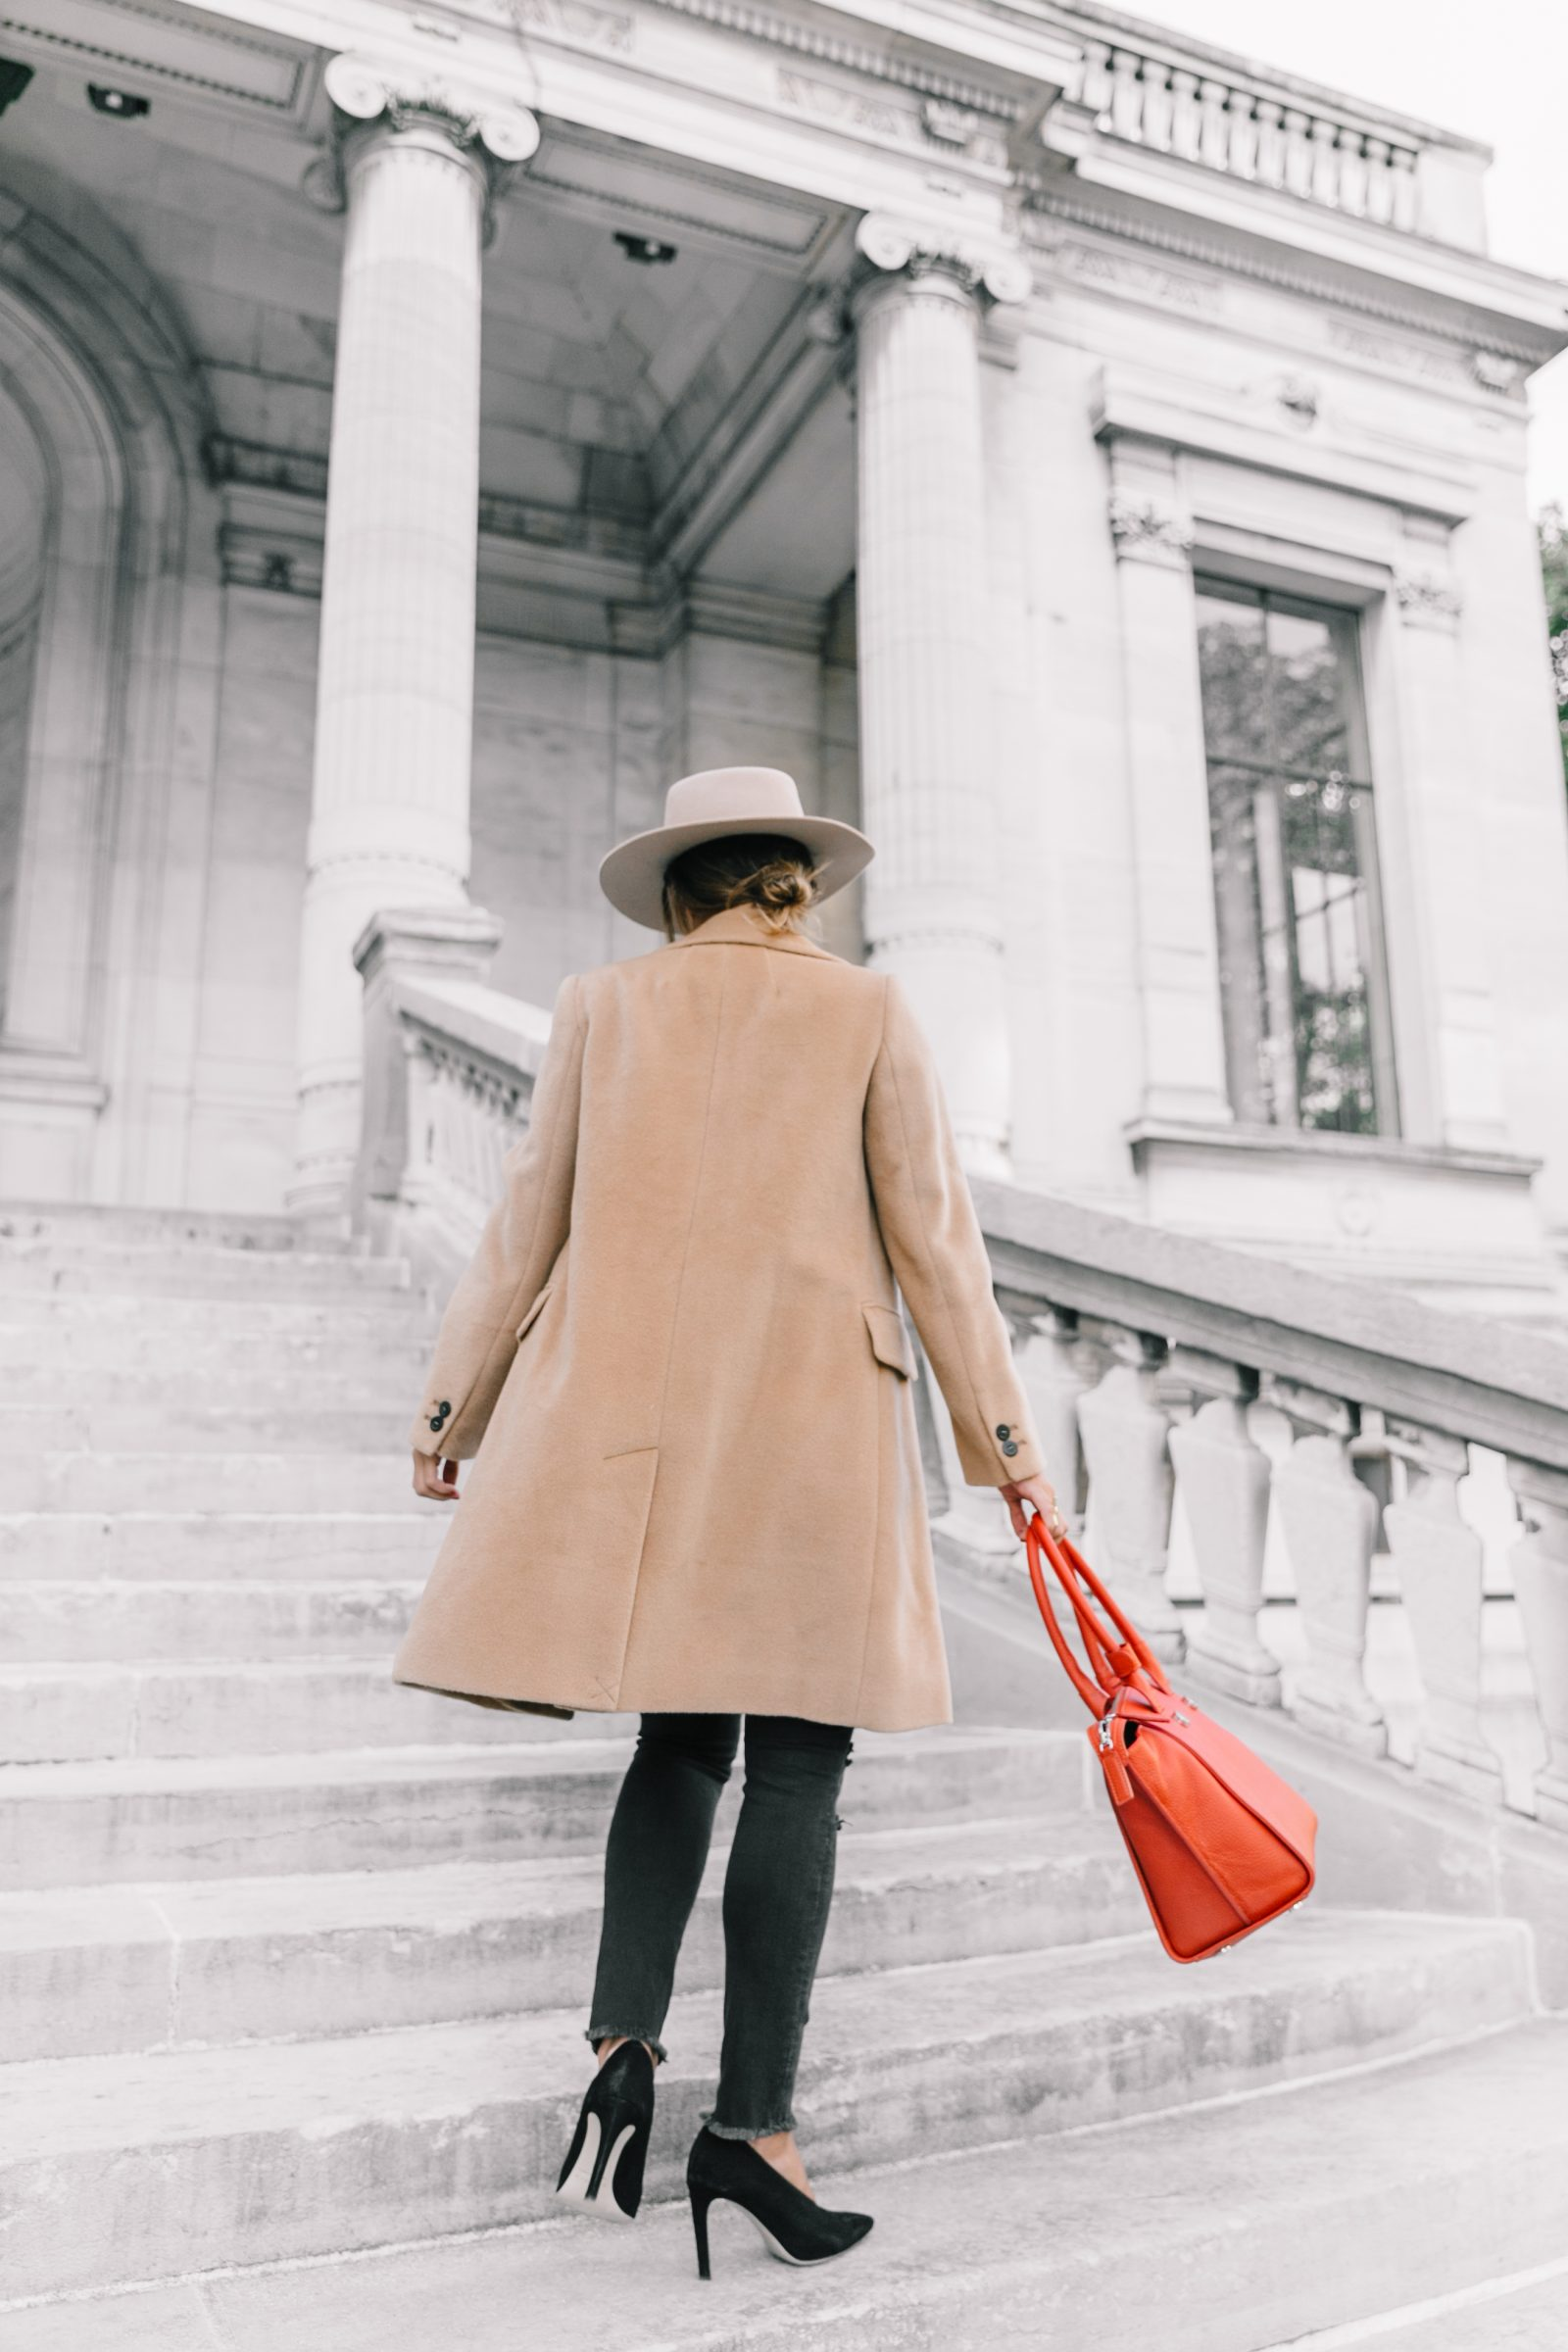 pfw-paris_fashion_week_ss17-street_style-outfits-collage_vintage-max_and_co-camel_coat-orange_bag-skinny_jeans-sandro_shoes-hat-sincerely_jules_jeans-12